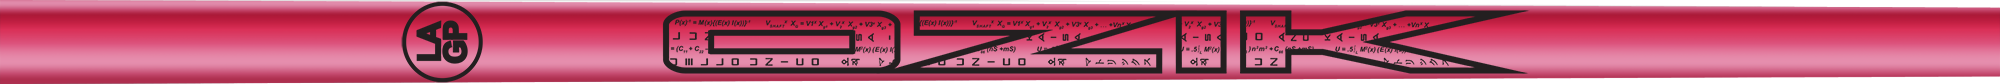 Ozik Red Tie: Neon Pink Black Gloss - Wood 50 S